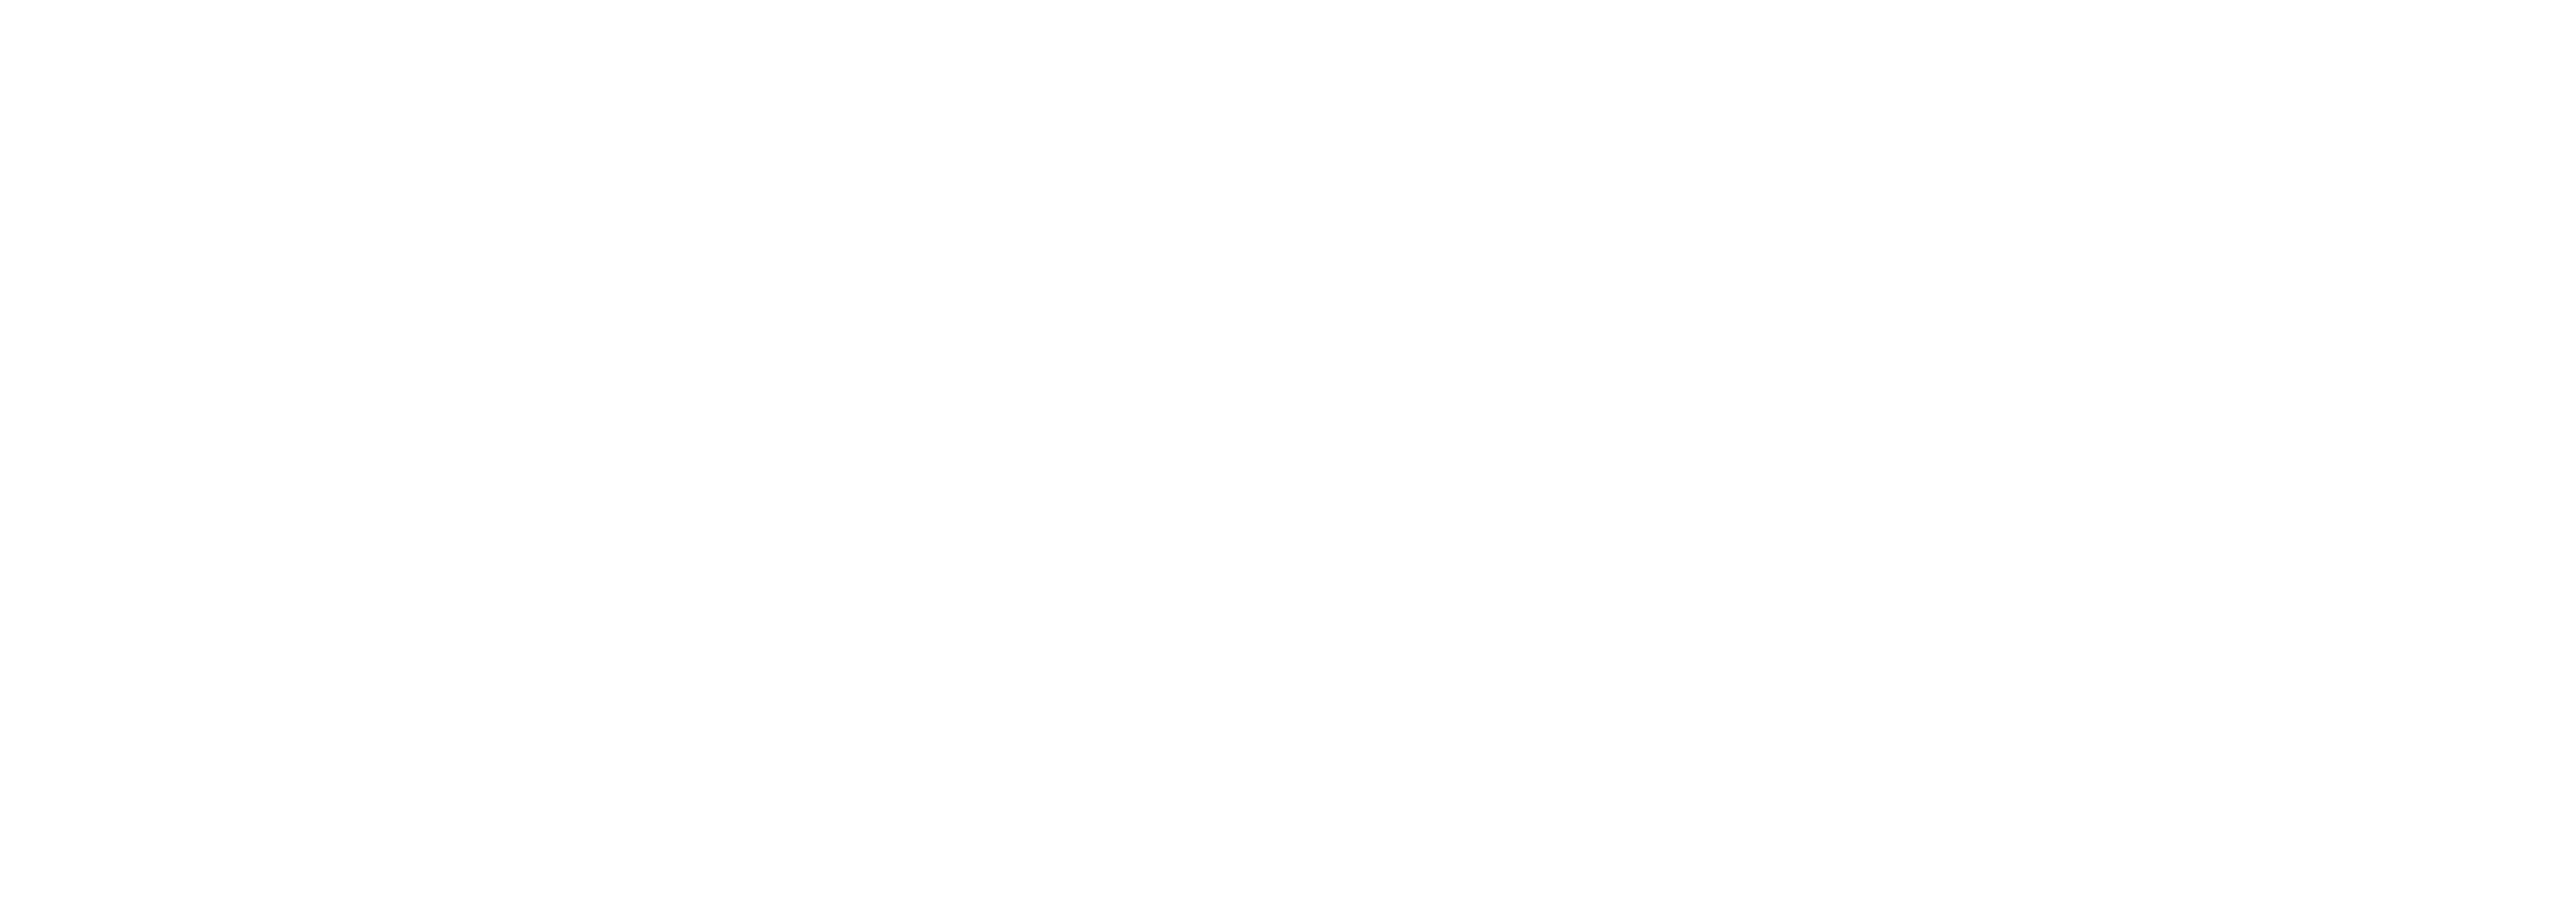 rendezvous-0710-2020-slider2.png